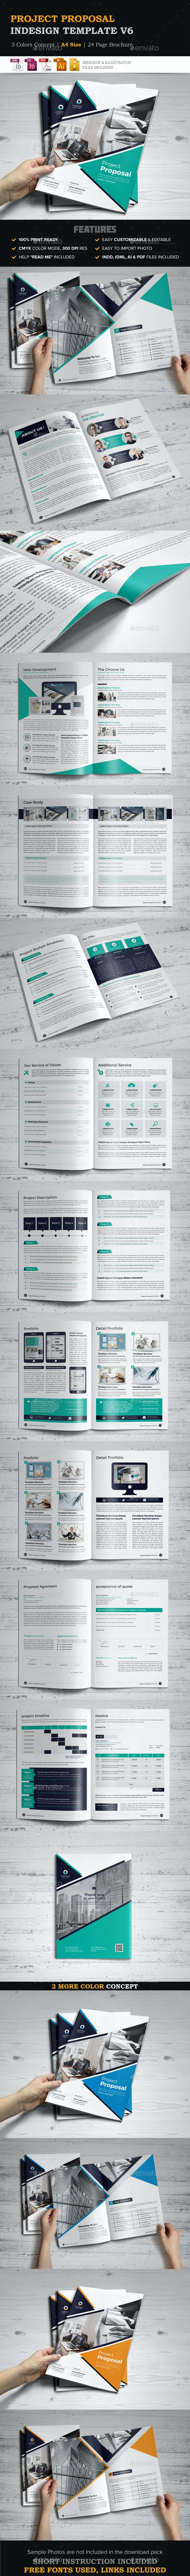 Project Proposal InDesign Template v6 - Proposals & Invoices Stationery